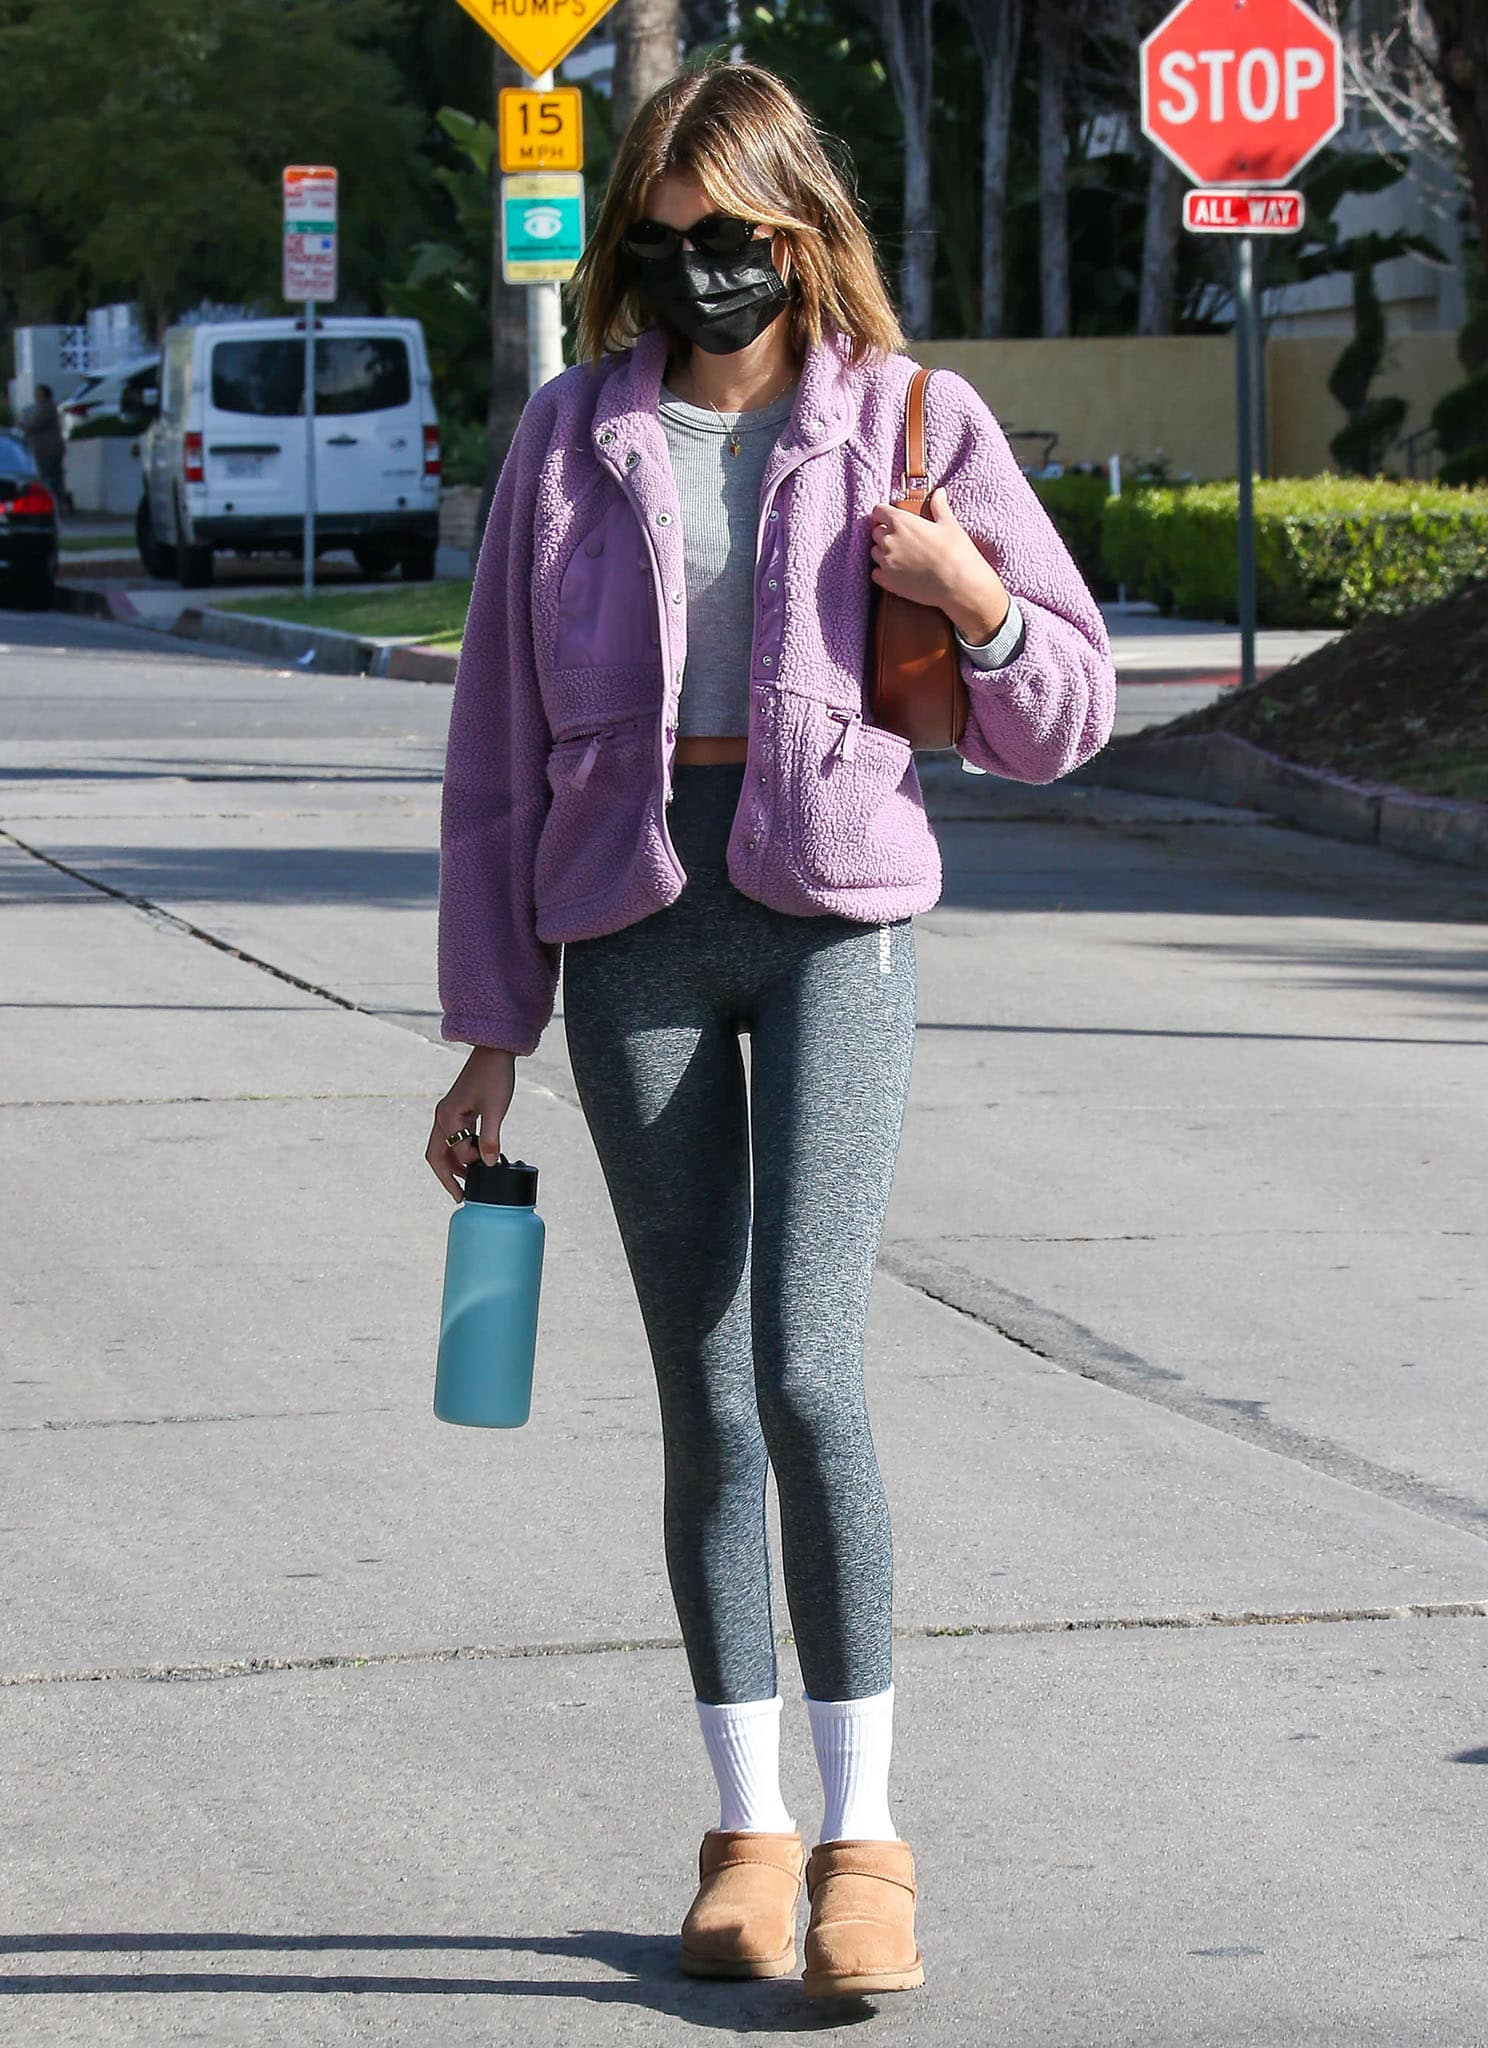 Kaia Gerber heads to a Pilates class in Los Angeles on March 9, 2021